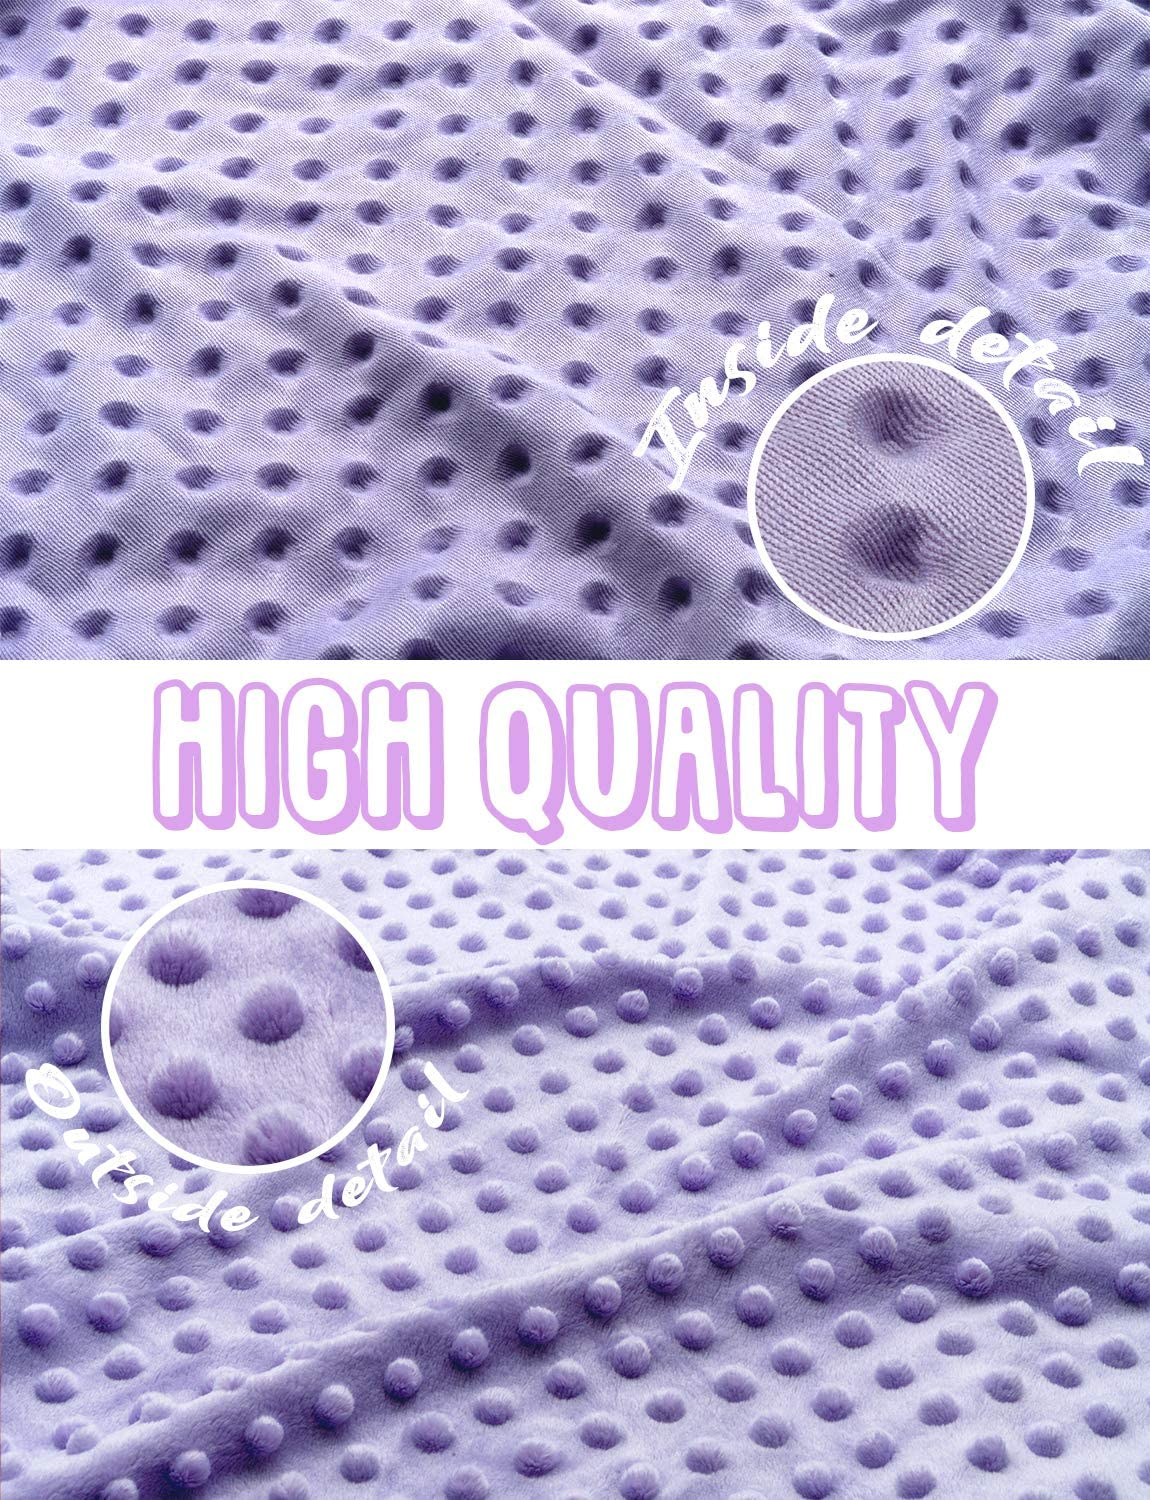 Ultra Soft Minky Dot Changing Table Pad Cover for Diaper Changing Pad Queness Baby Changing Pad Cover Orchid Change Table Sheets Ideal Shower Gift for Newborn Girls and Boys